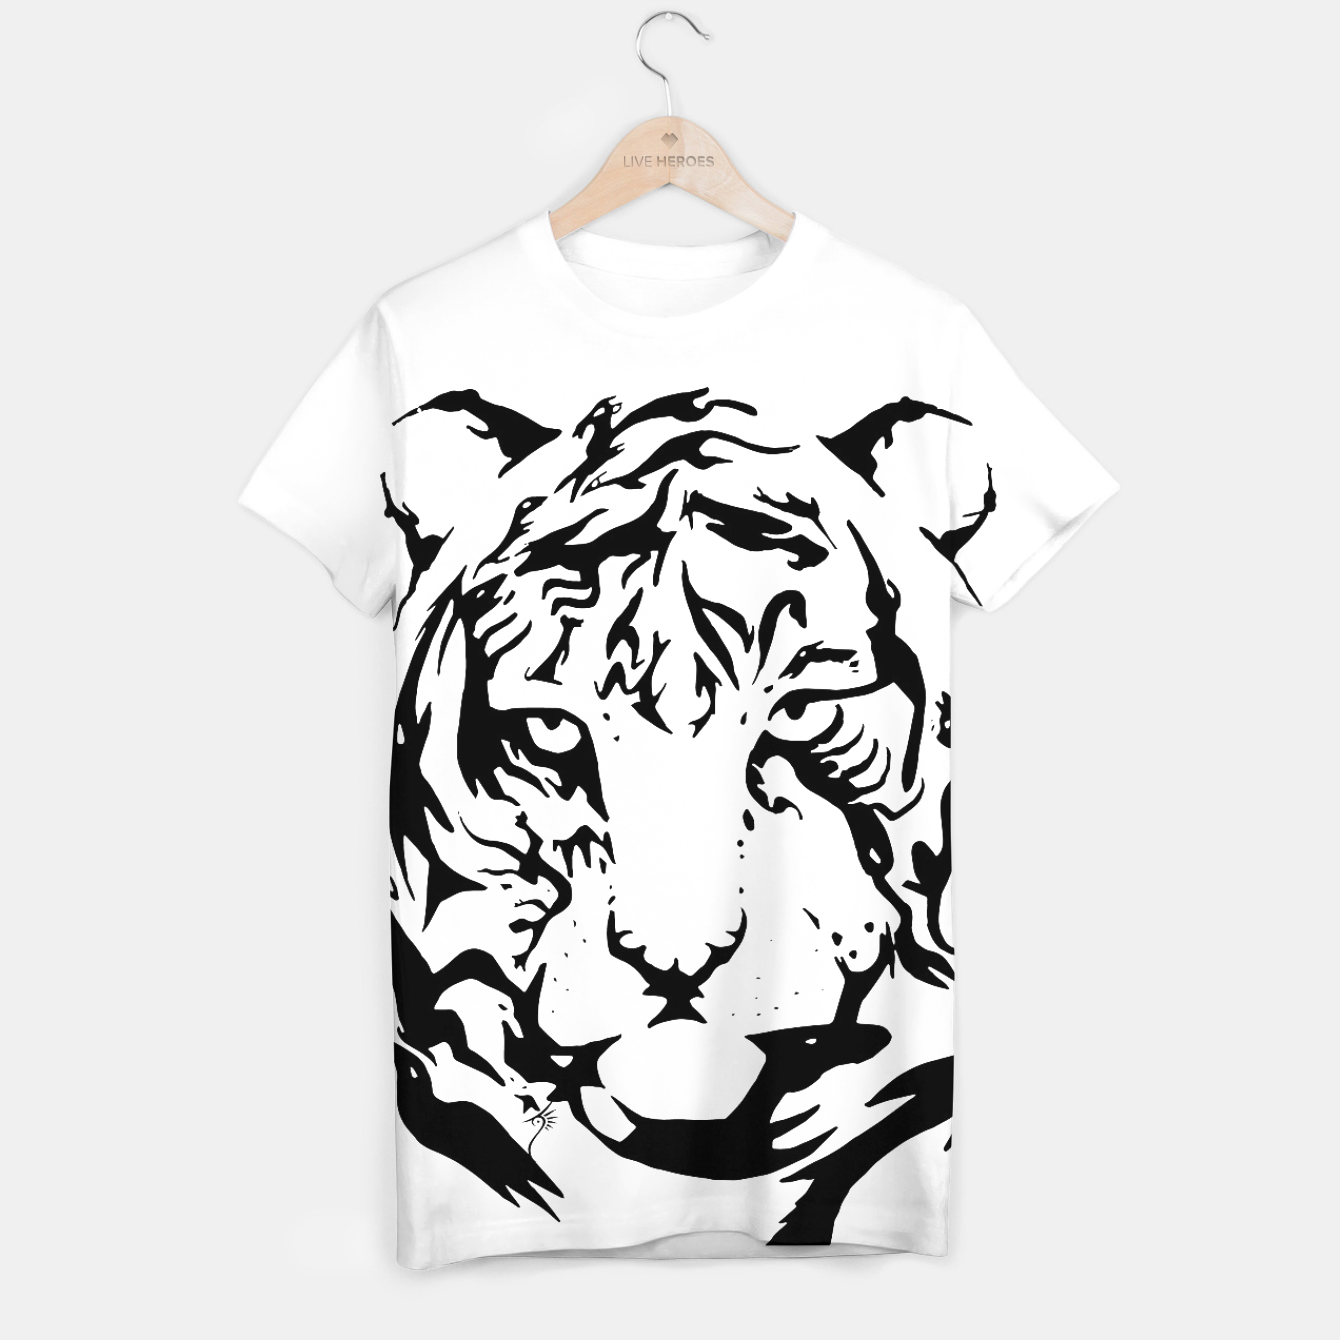 Wild Tiger - Camiseta/T-shirt - Cómprala aquí/Buy it here - https://liveheroes.com/es/product/show/152237 - Diferentes tallas/Different sizes